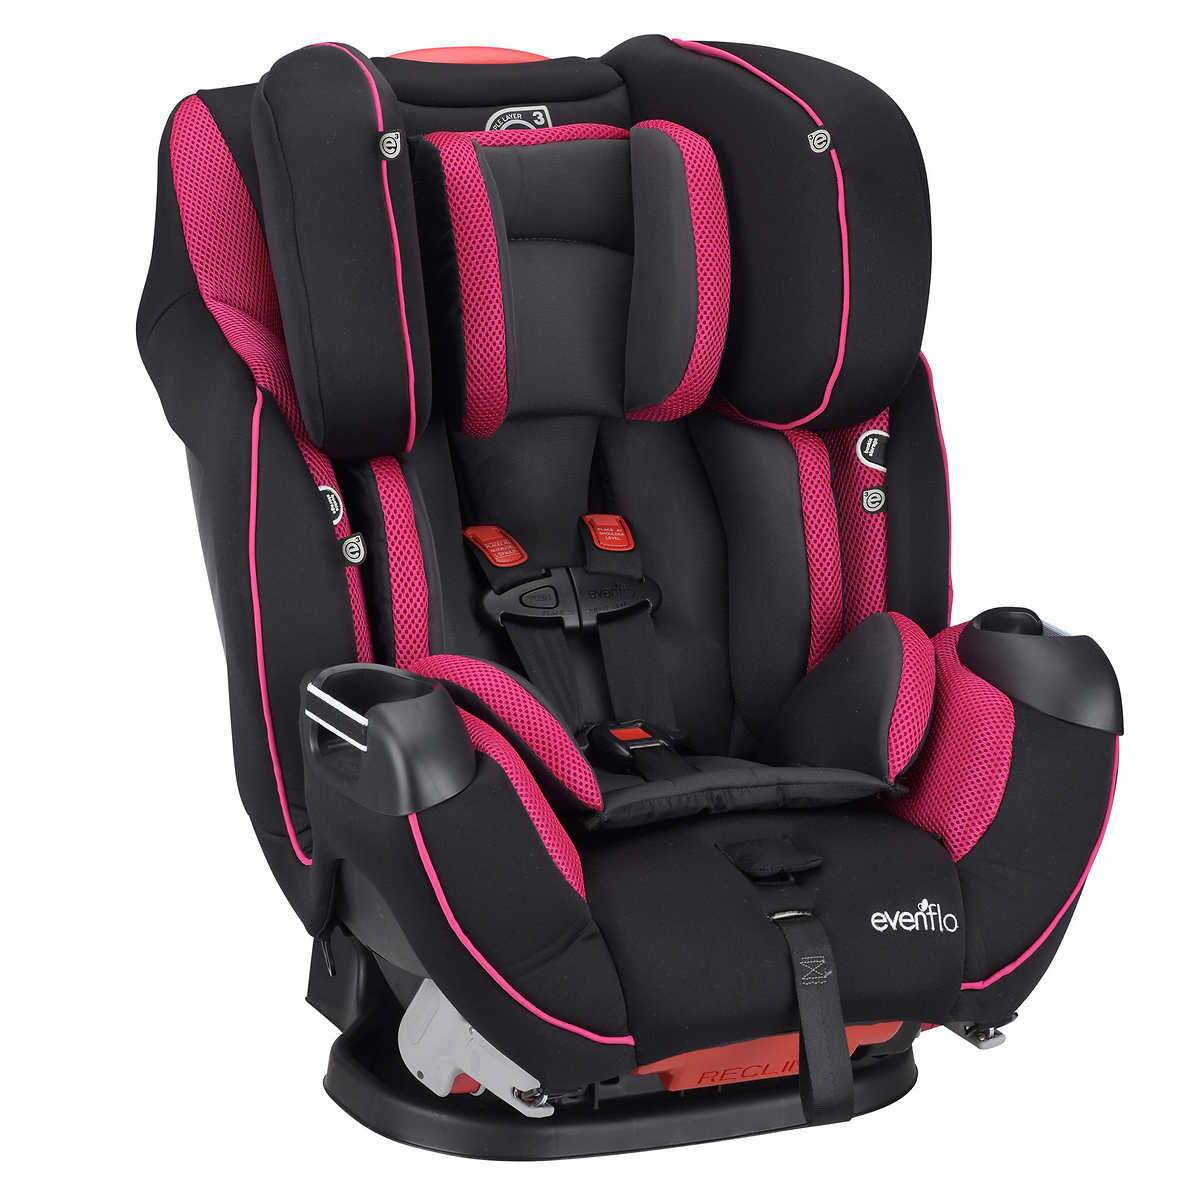 Used crib for sale edmonton - Evenflo Symphony Elite Car Seat Raspberry Sorbet